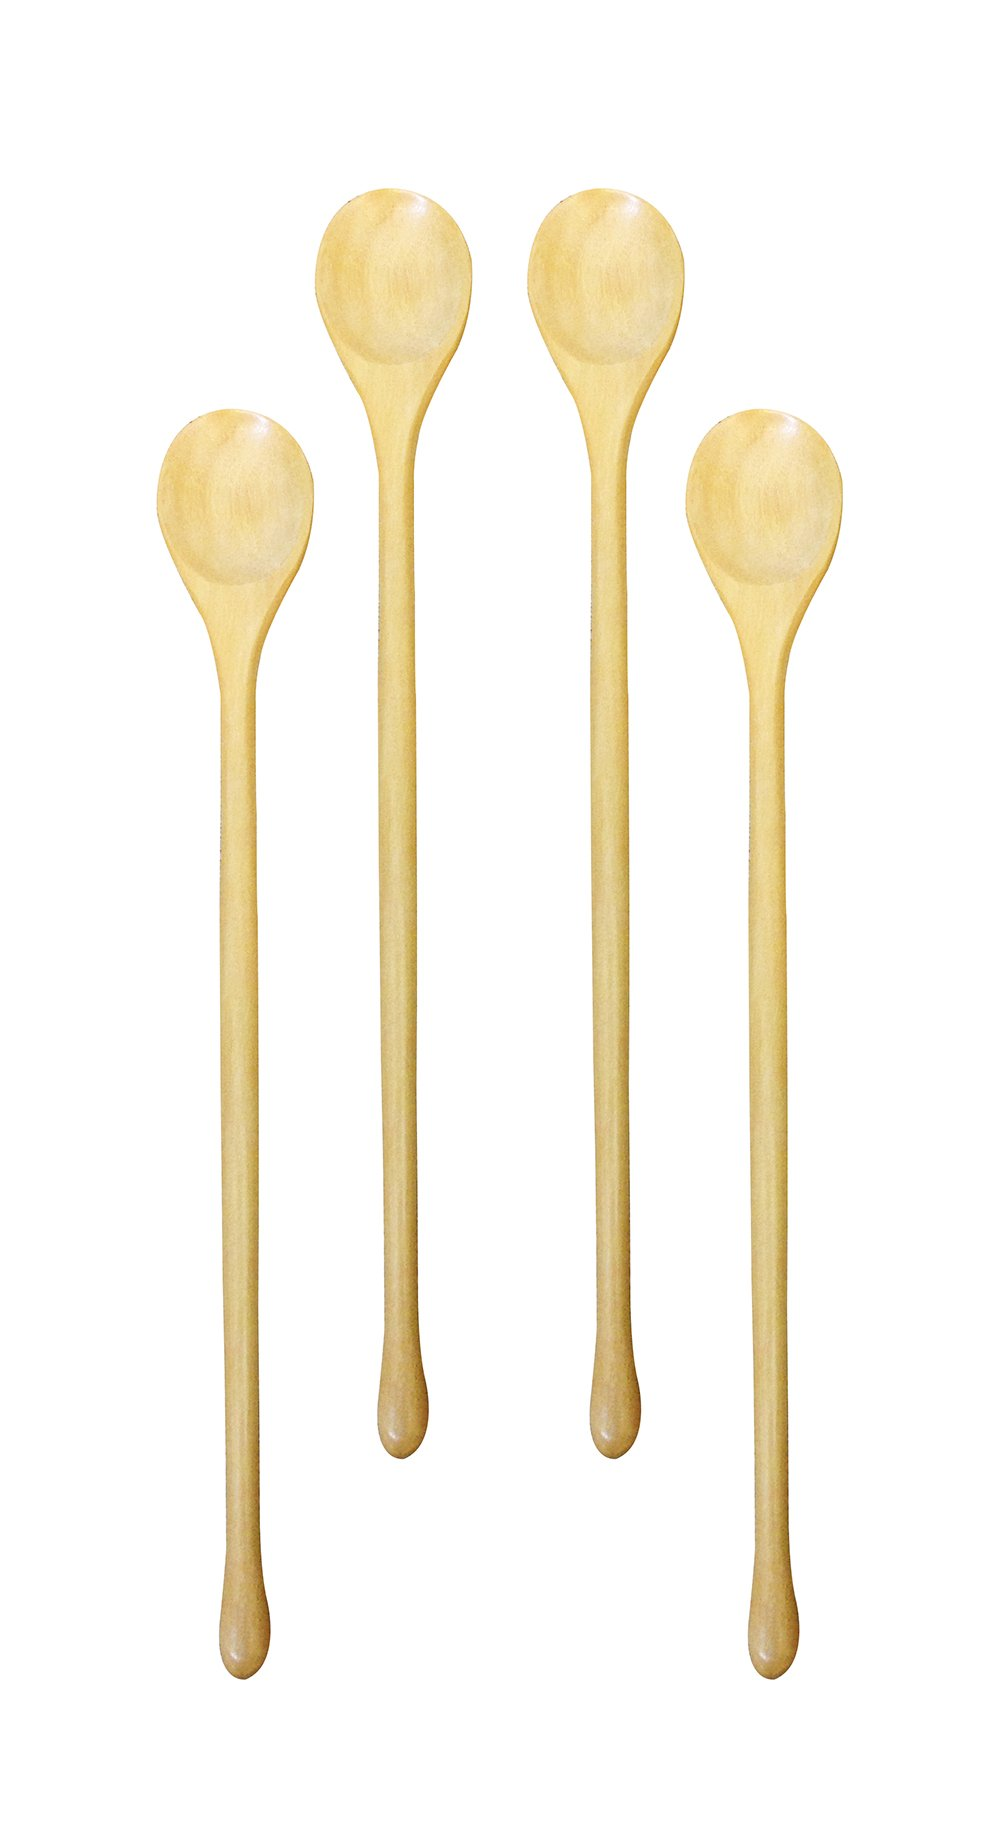 (Set of 4) Omin Handmade Natural Kankrao Wood Long Handle Wooden Spoons, Cocktail Drink Stirrers, Swizzle Sticks, Bar Spoon Cocktail Mixing Spoon 8.2 Inch with Gift Package